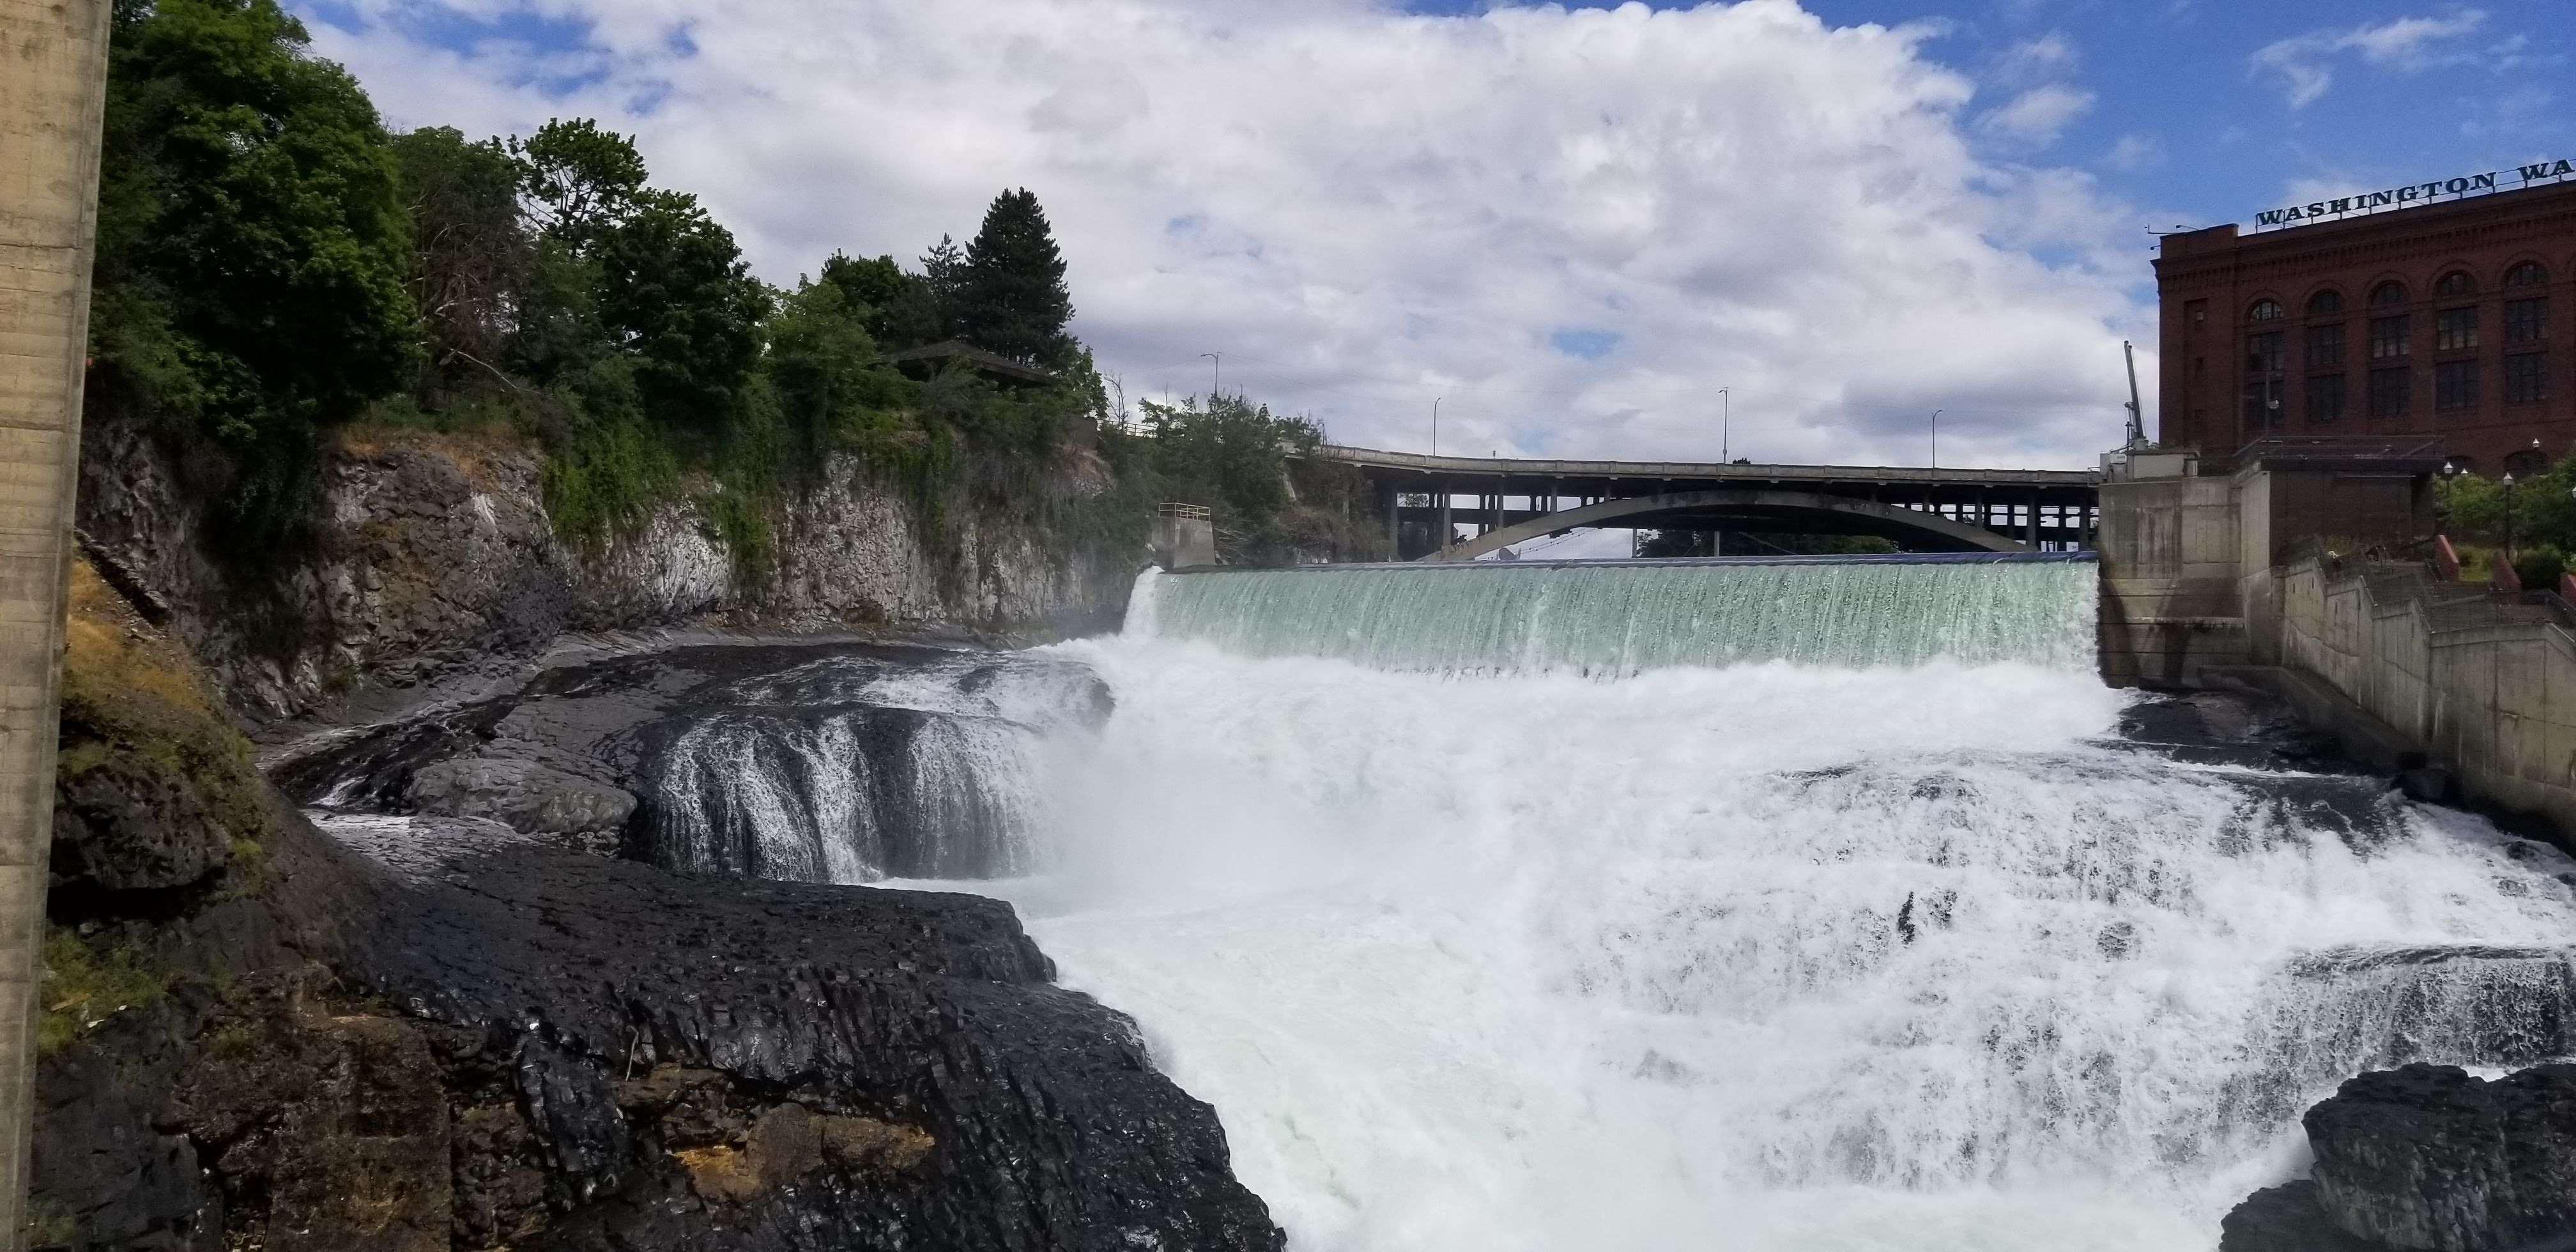 Lower Falls on the Spokane River